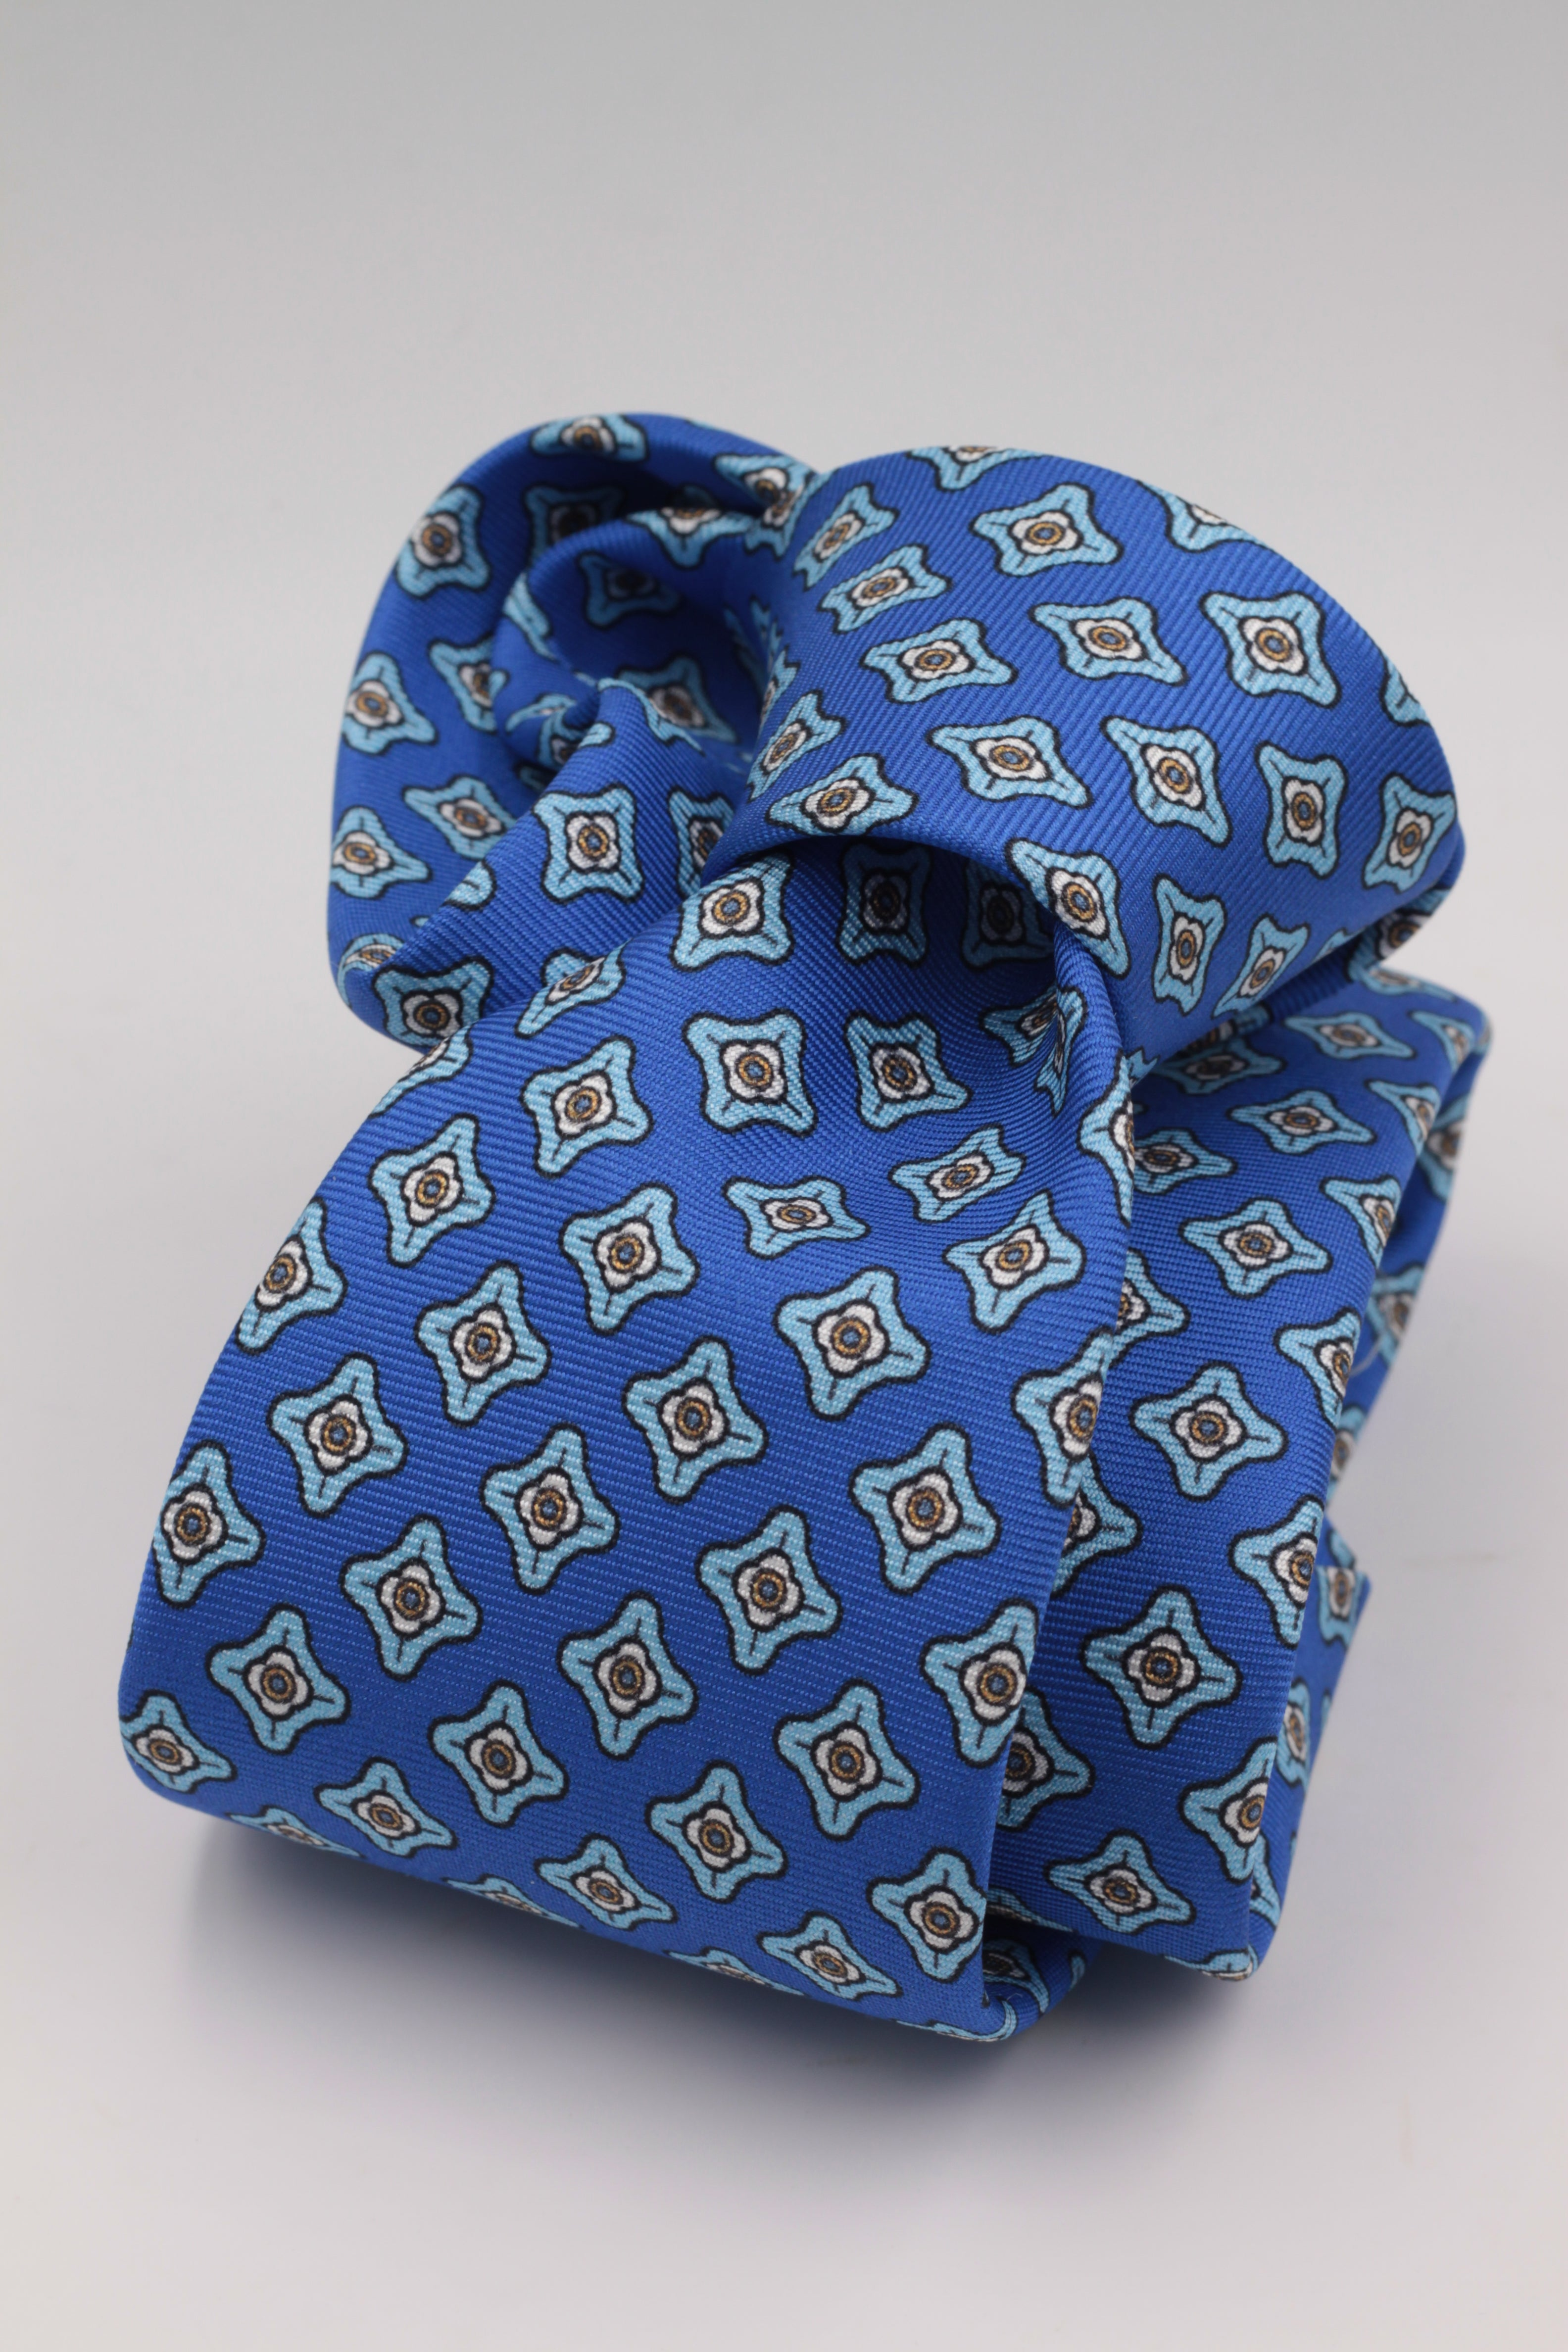 Cruciani & Bella 100% Printed Silk Italian Fabric Self Tipped Royal Blue Light Blue, Khaki and White motif Tie Handmade in Rome 8 cm X 150 cm